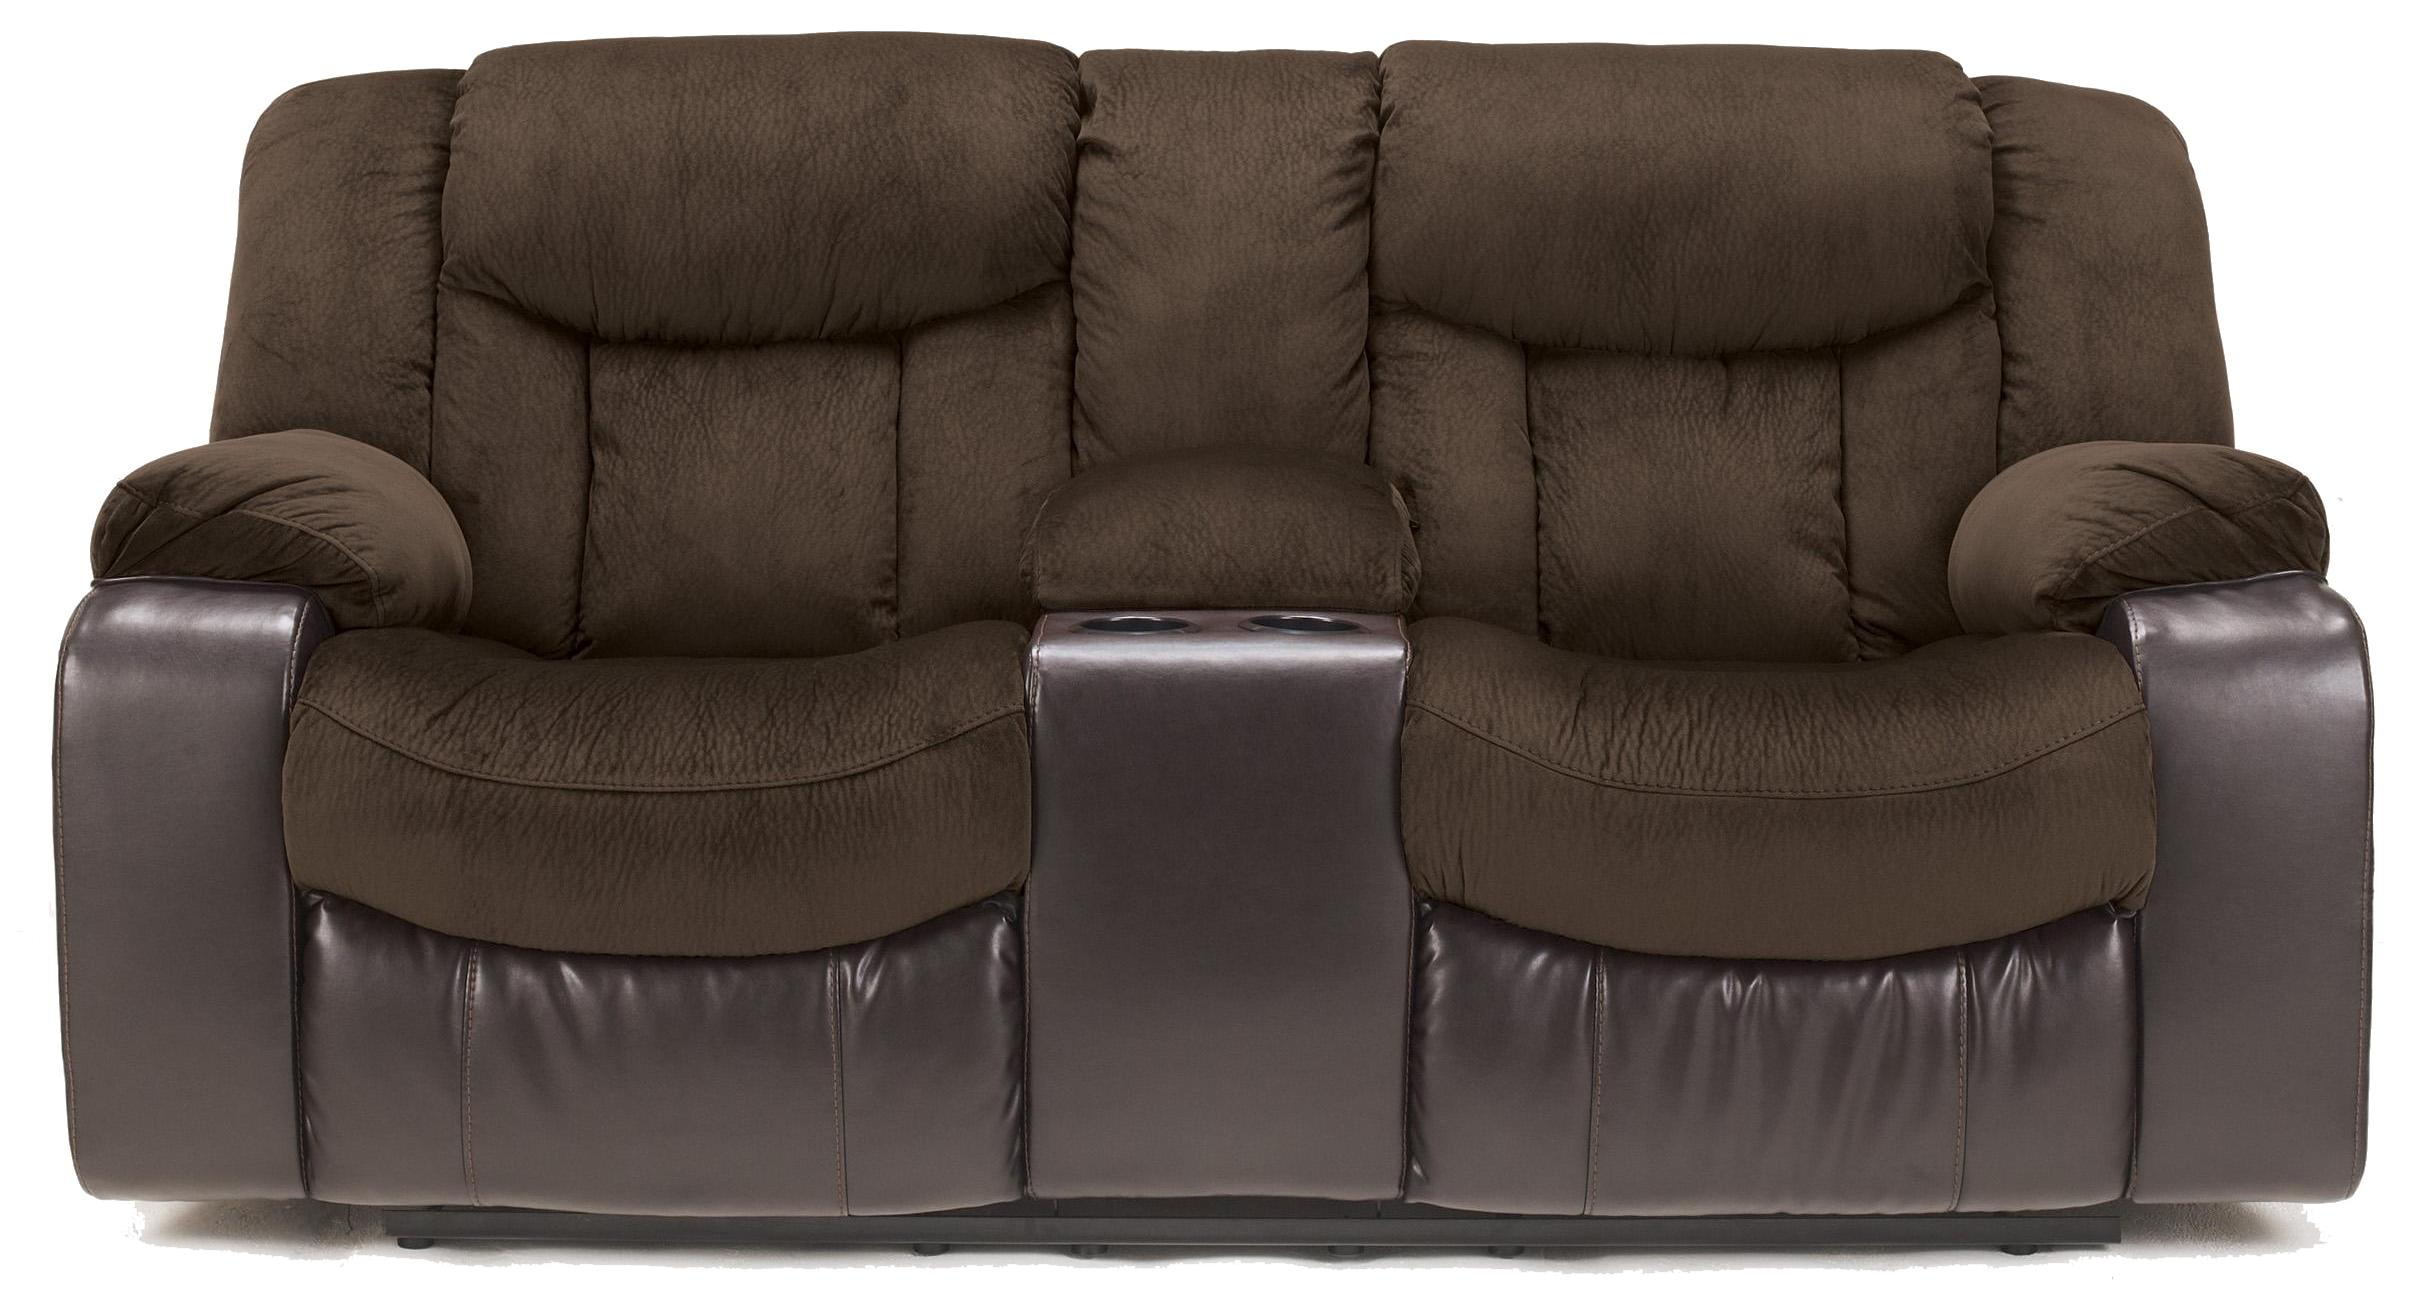 Signature Design By Ashley Tafton Java 7920294 Contemporary Double Reclining Loveseat With